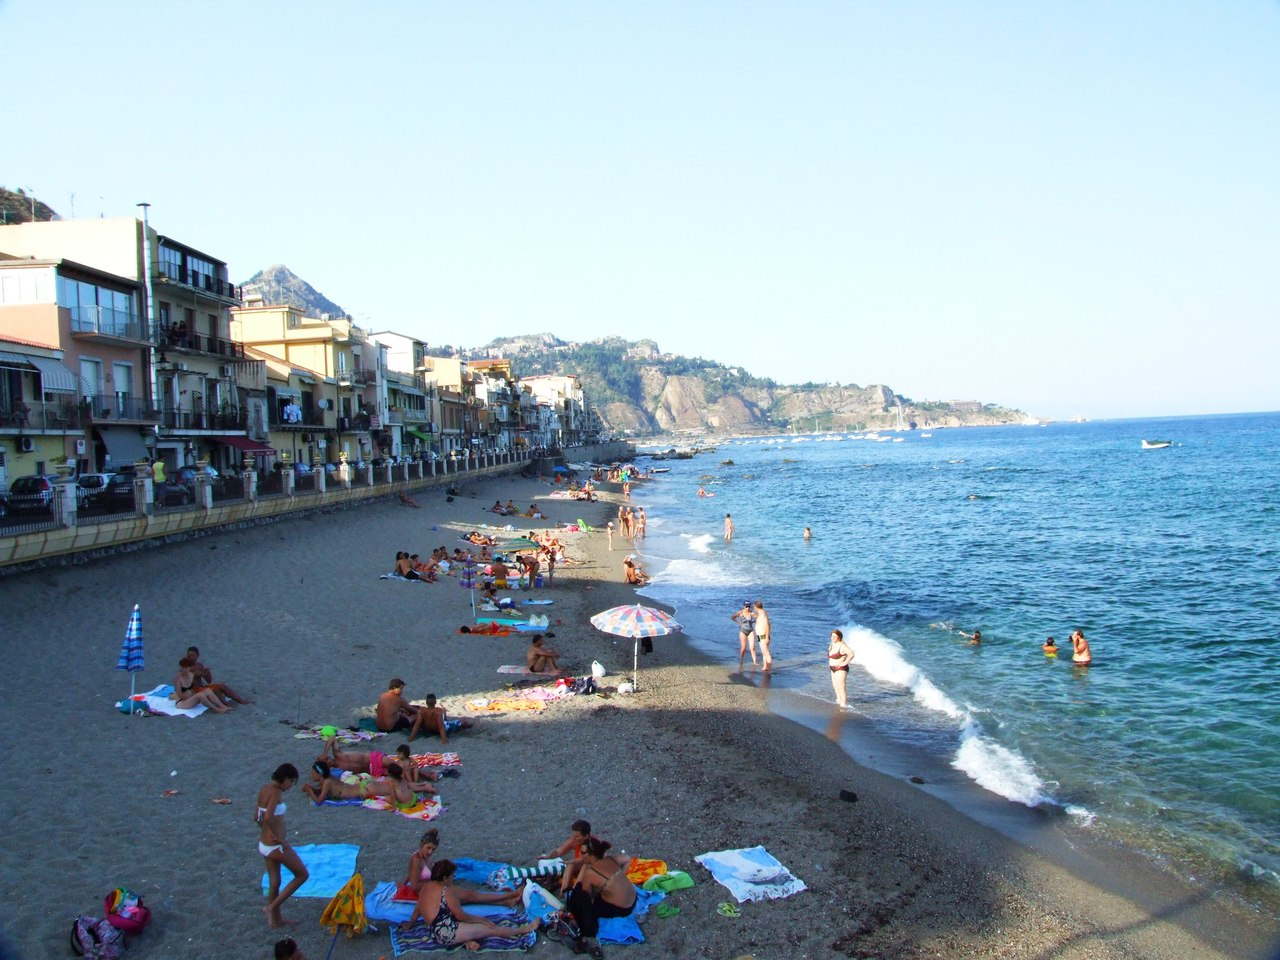 File:giardini naxos messina sicilia italy creative commons by